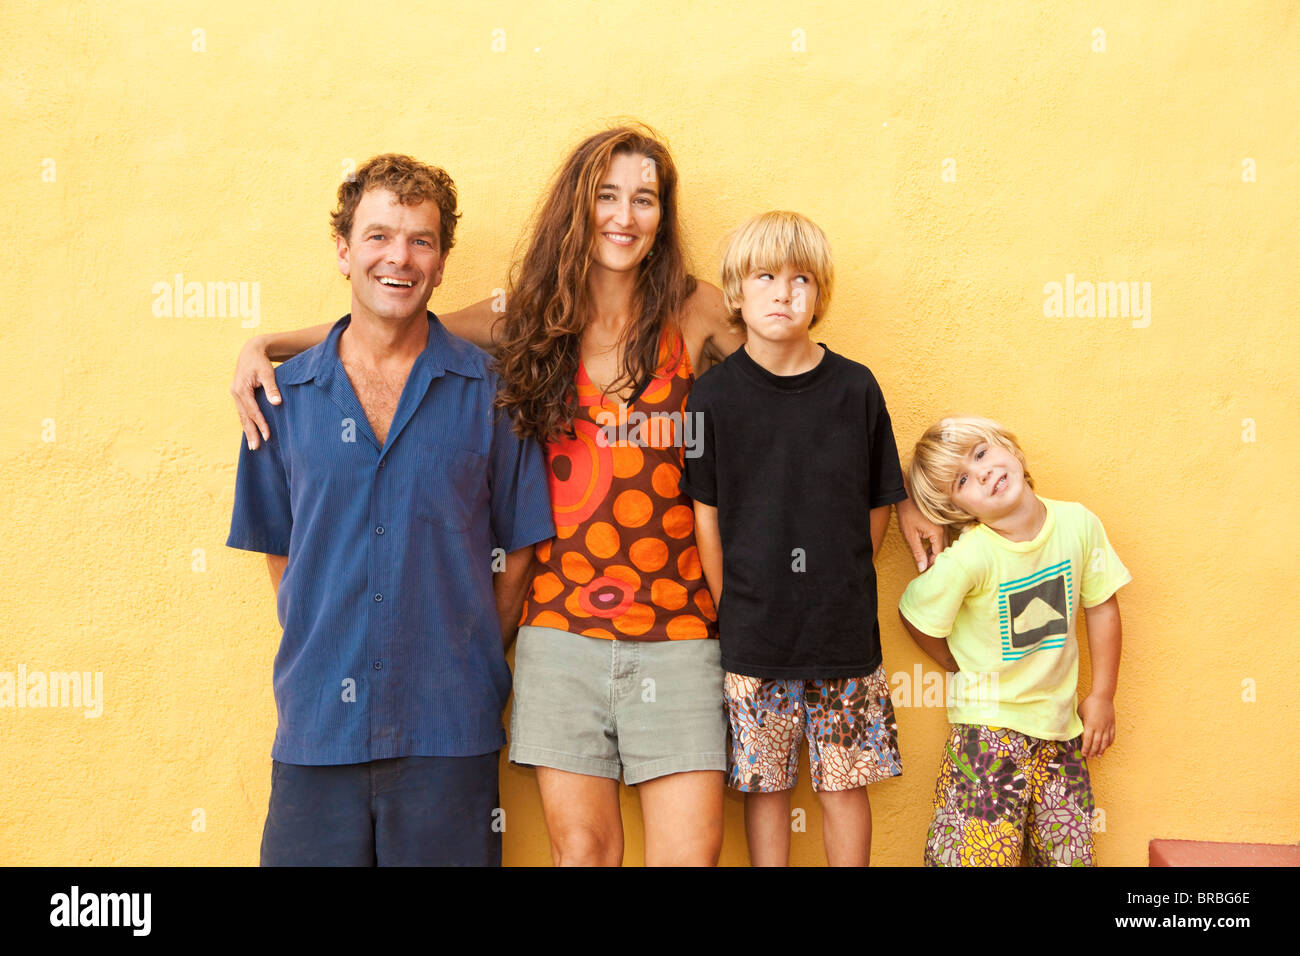 Portrait de parents avec de jeunes enfants Photo Stock